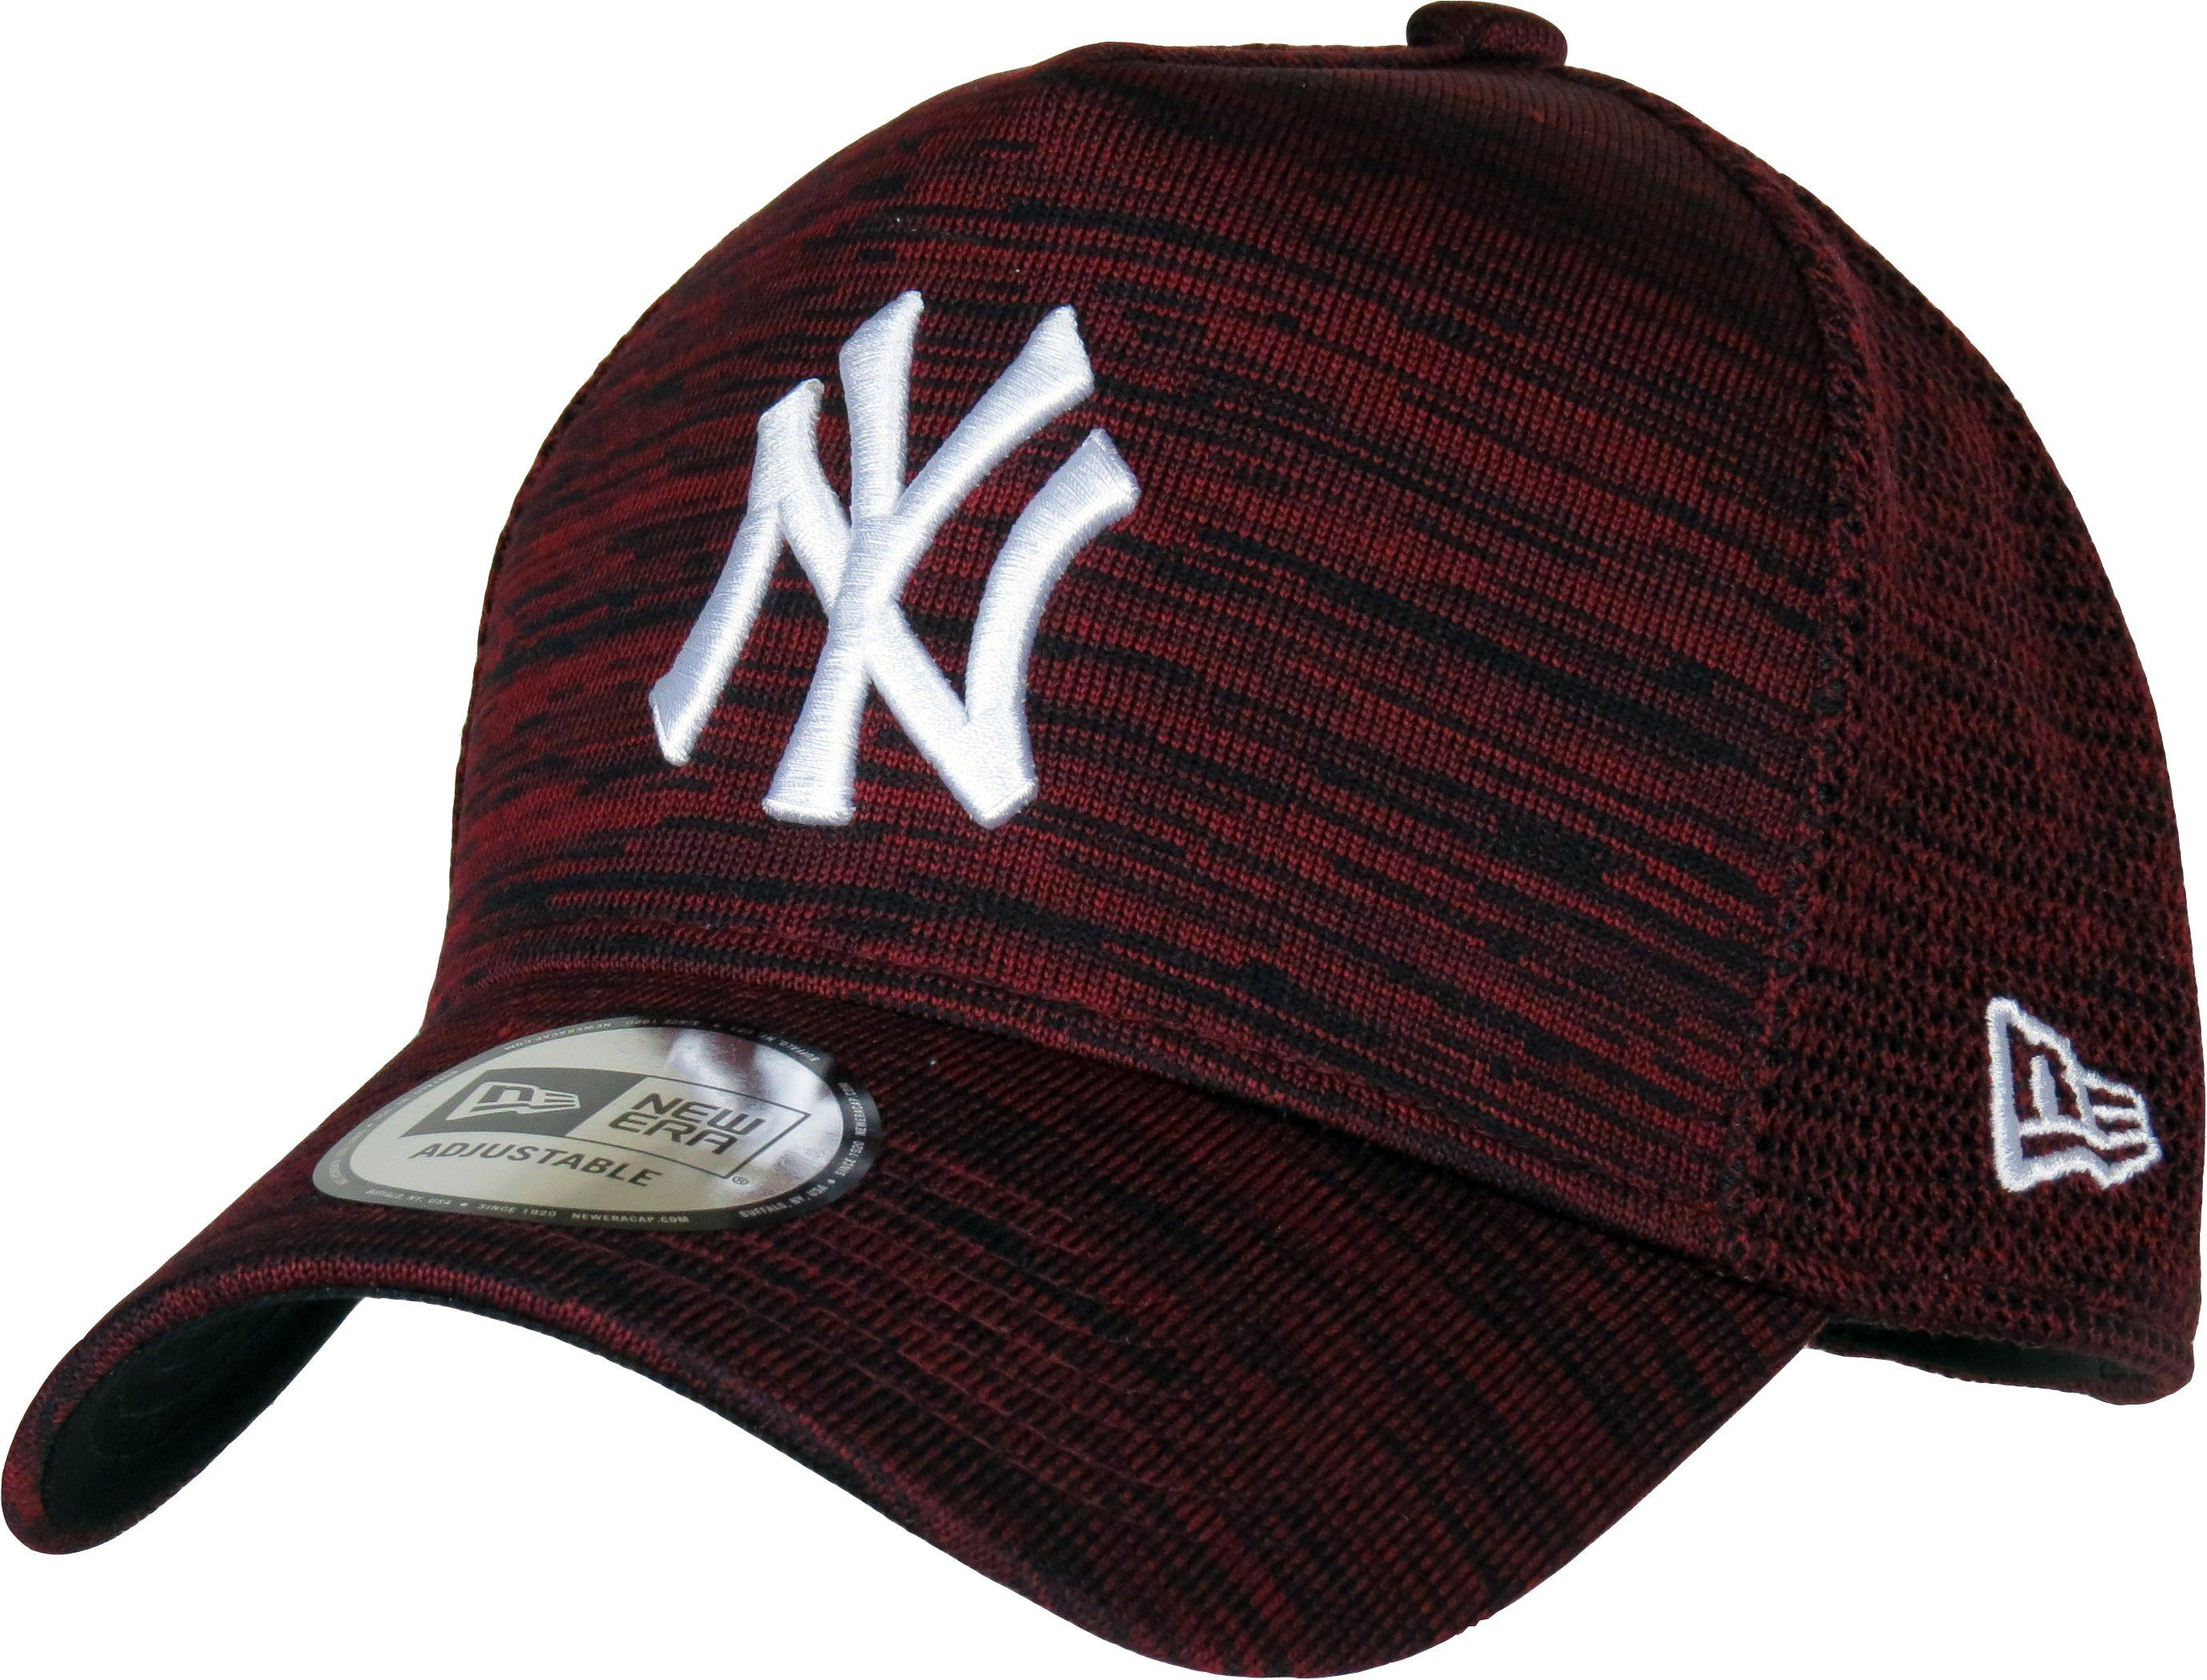 1960ba2d472 New York Yankees New Era Engineered Fit Trucker Cap. Maroon and Black  fleck